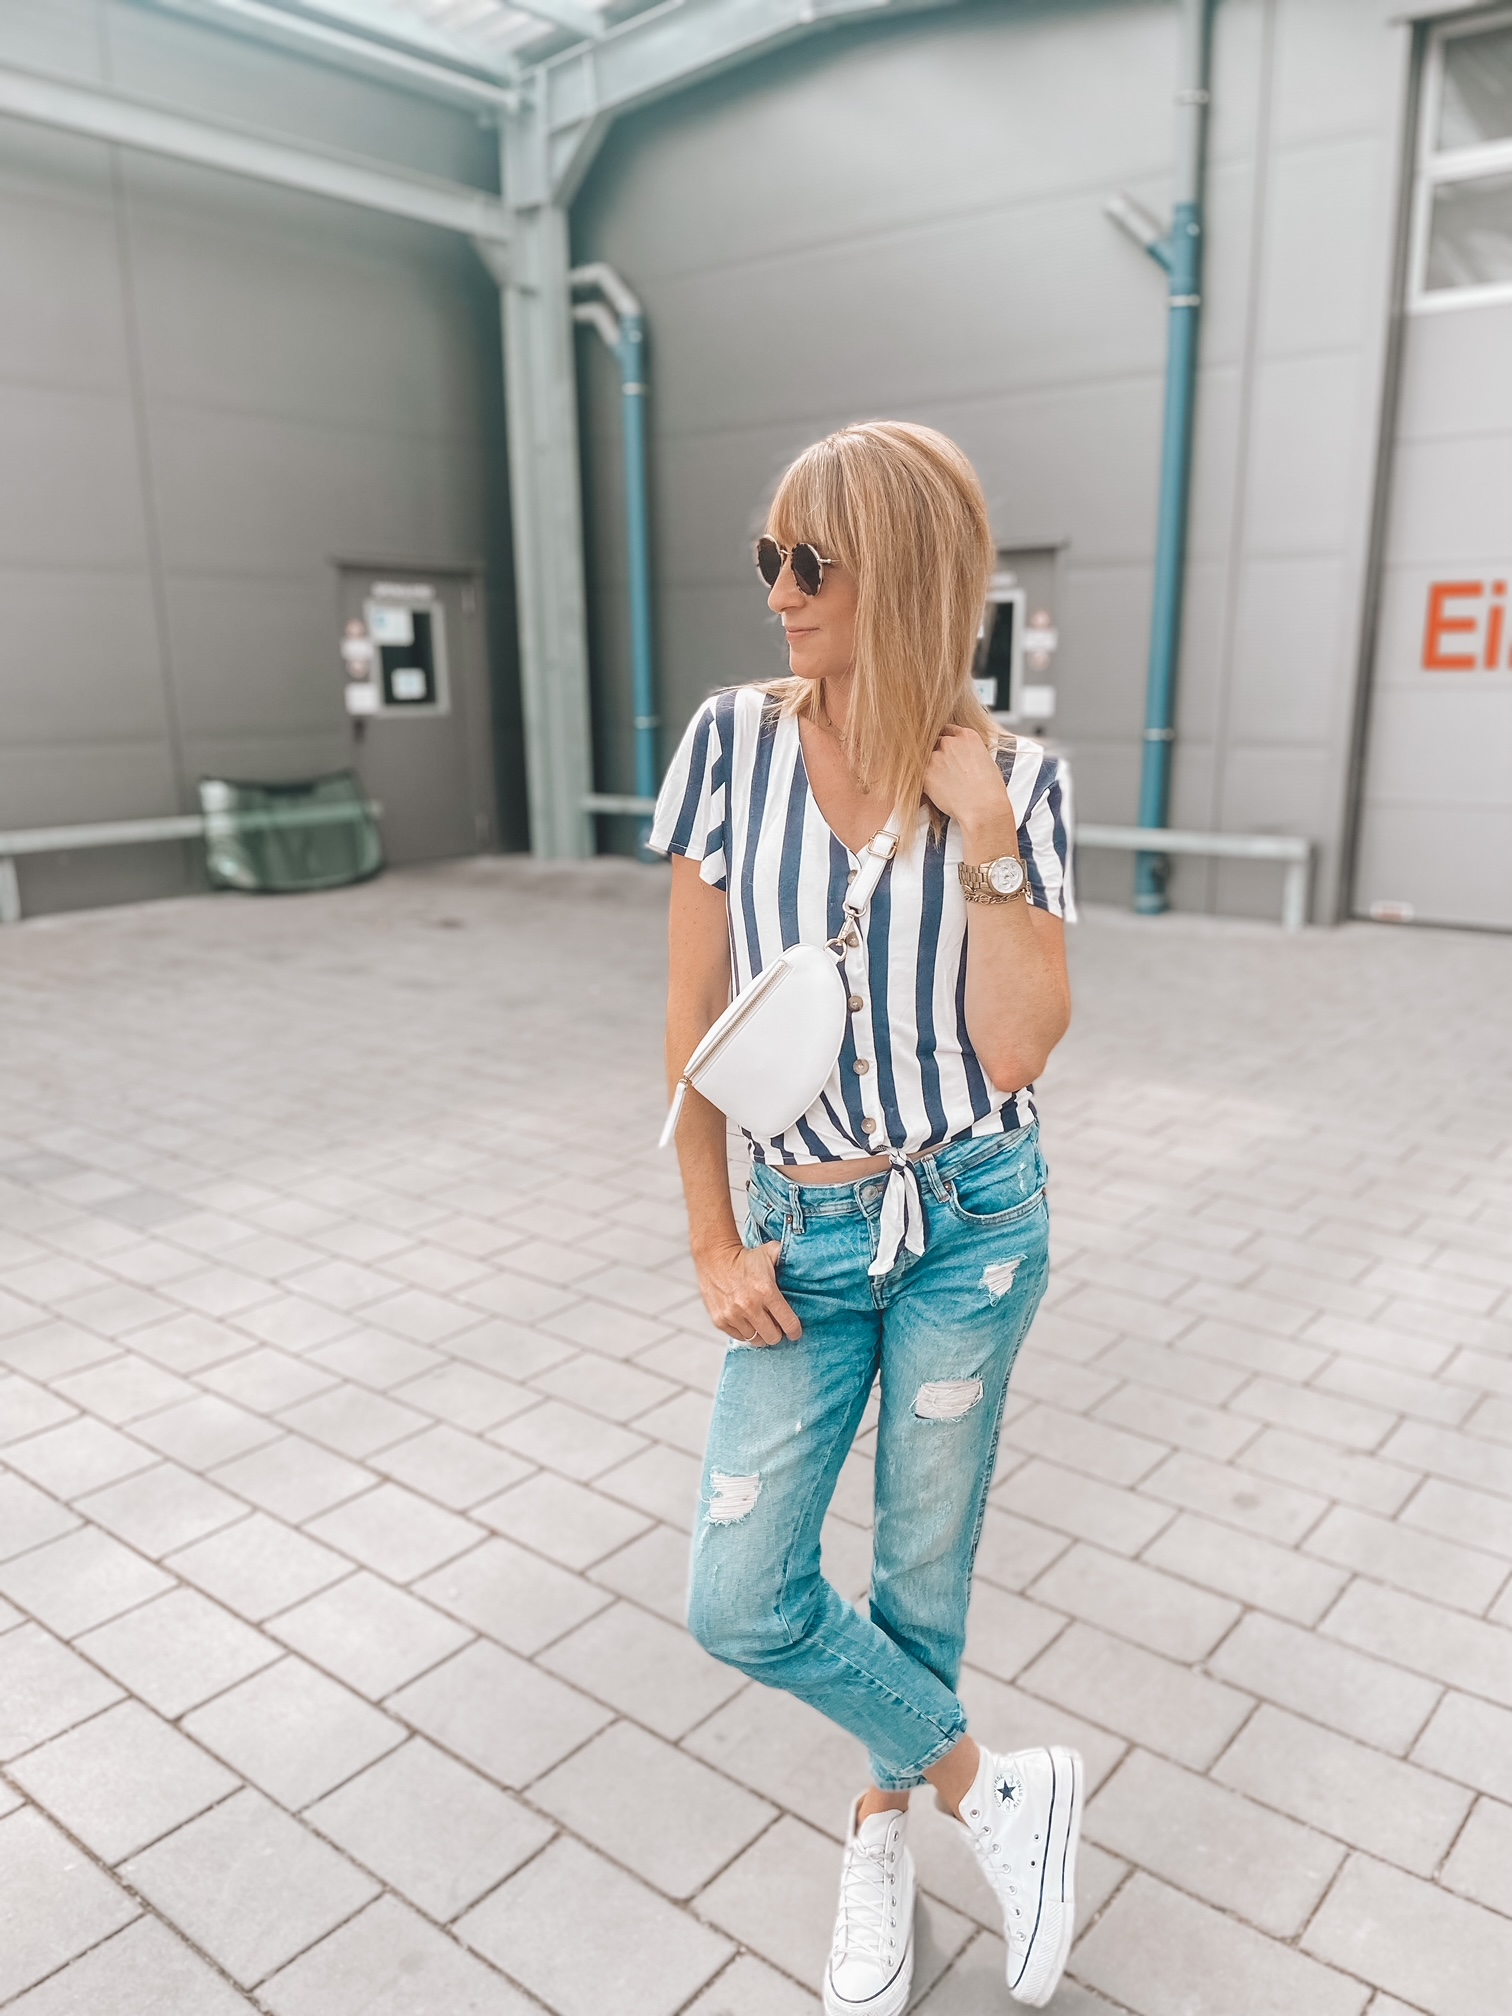 It's all about Jeans